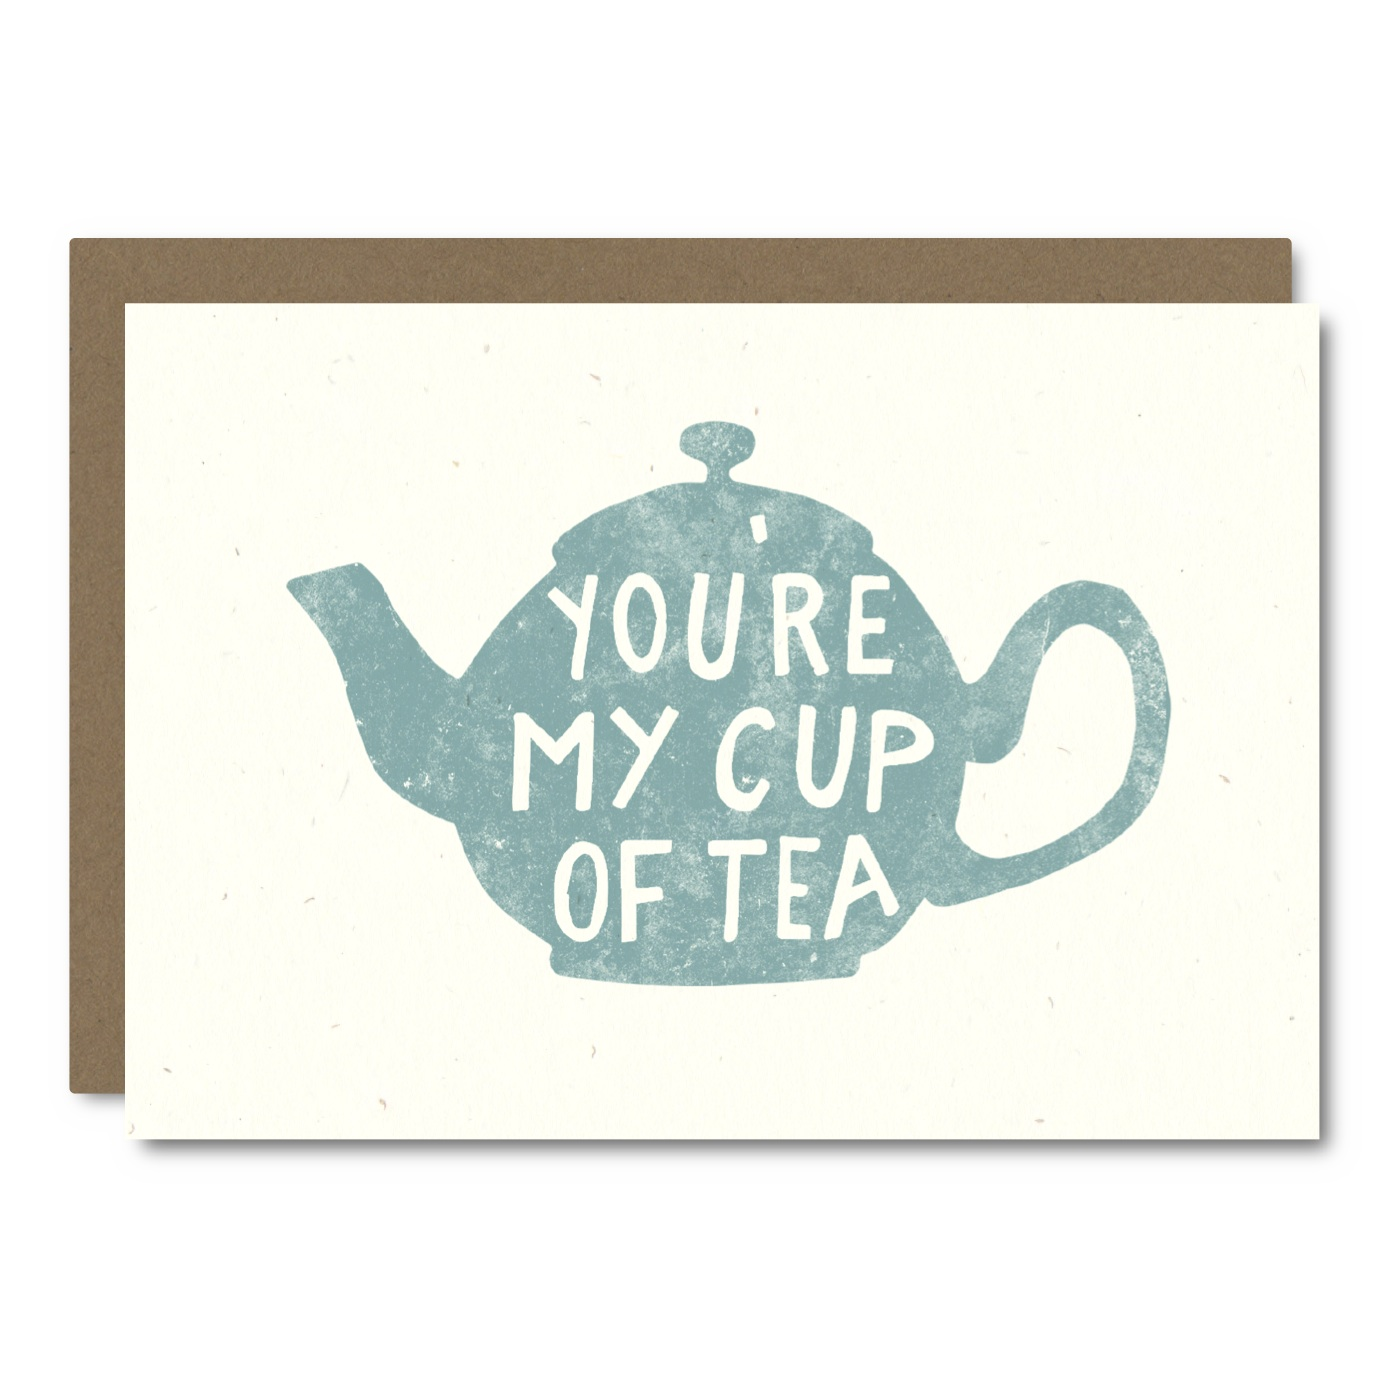 My Cup of Tea    Card - CC01